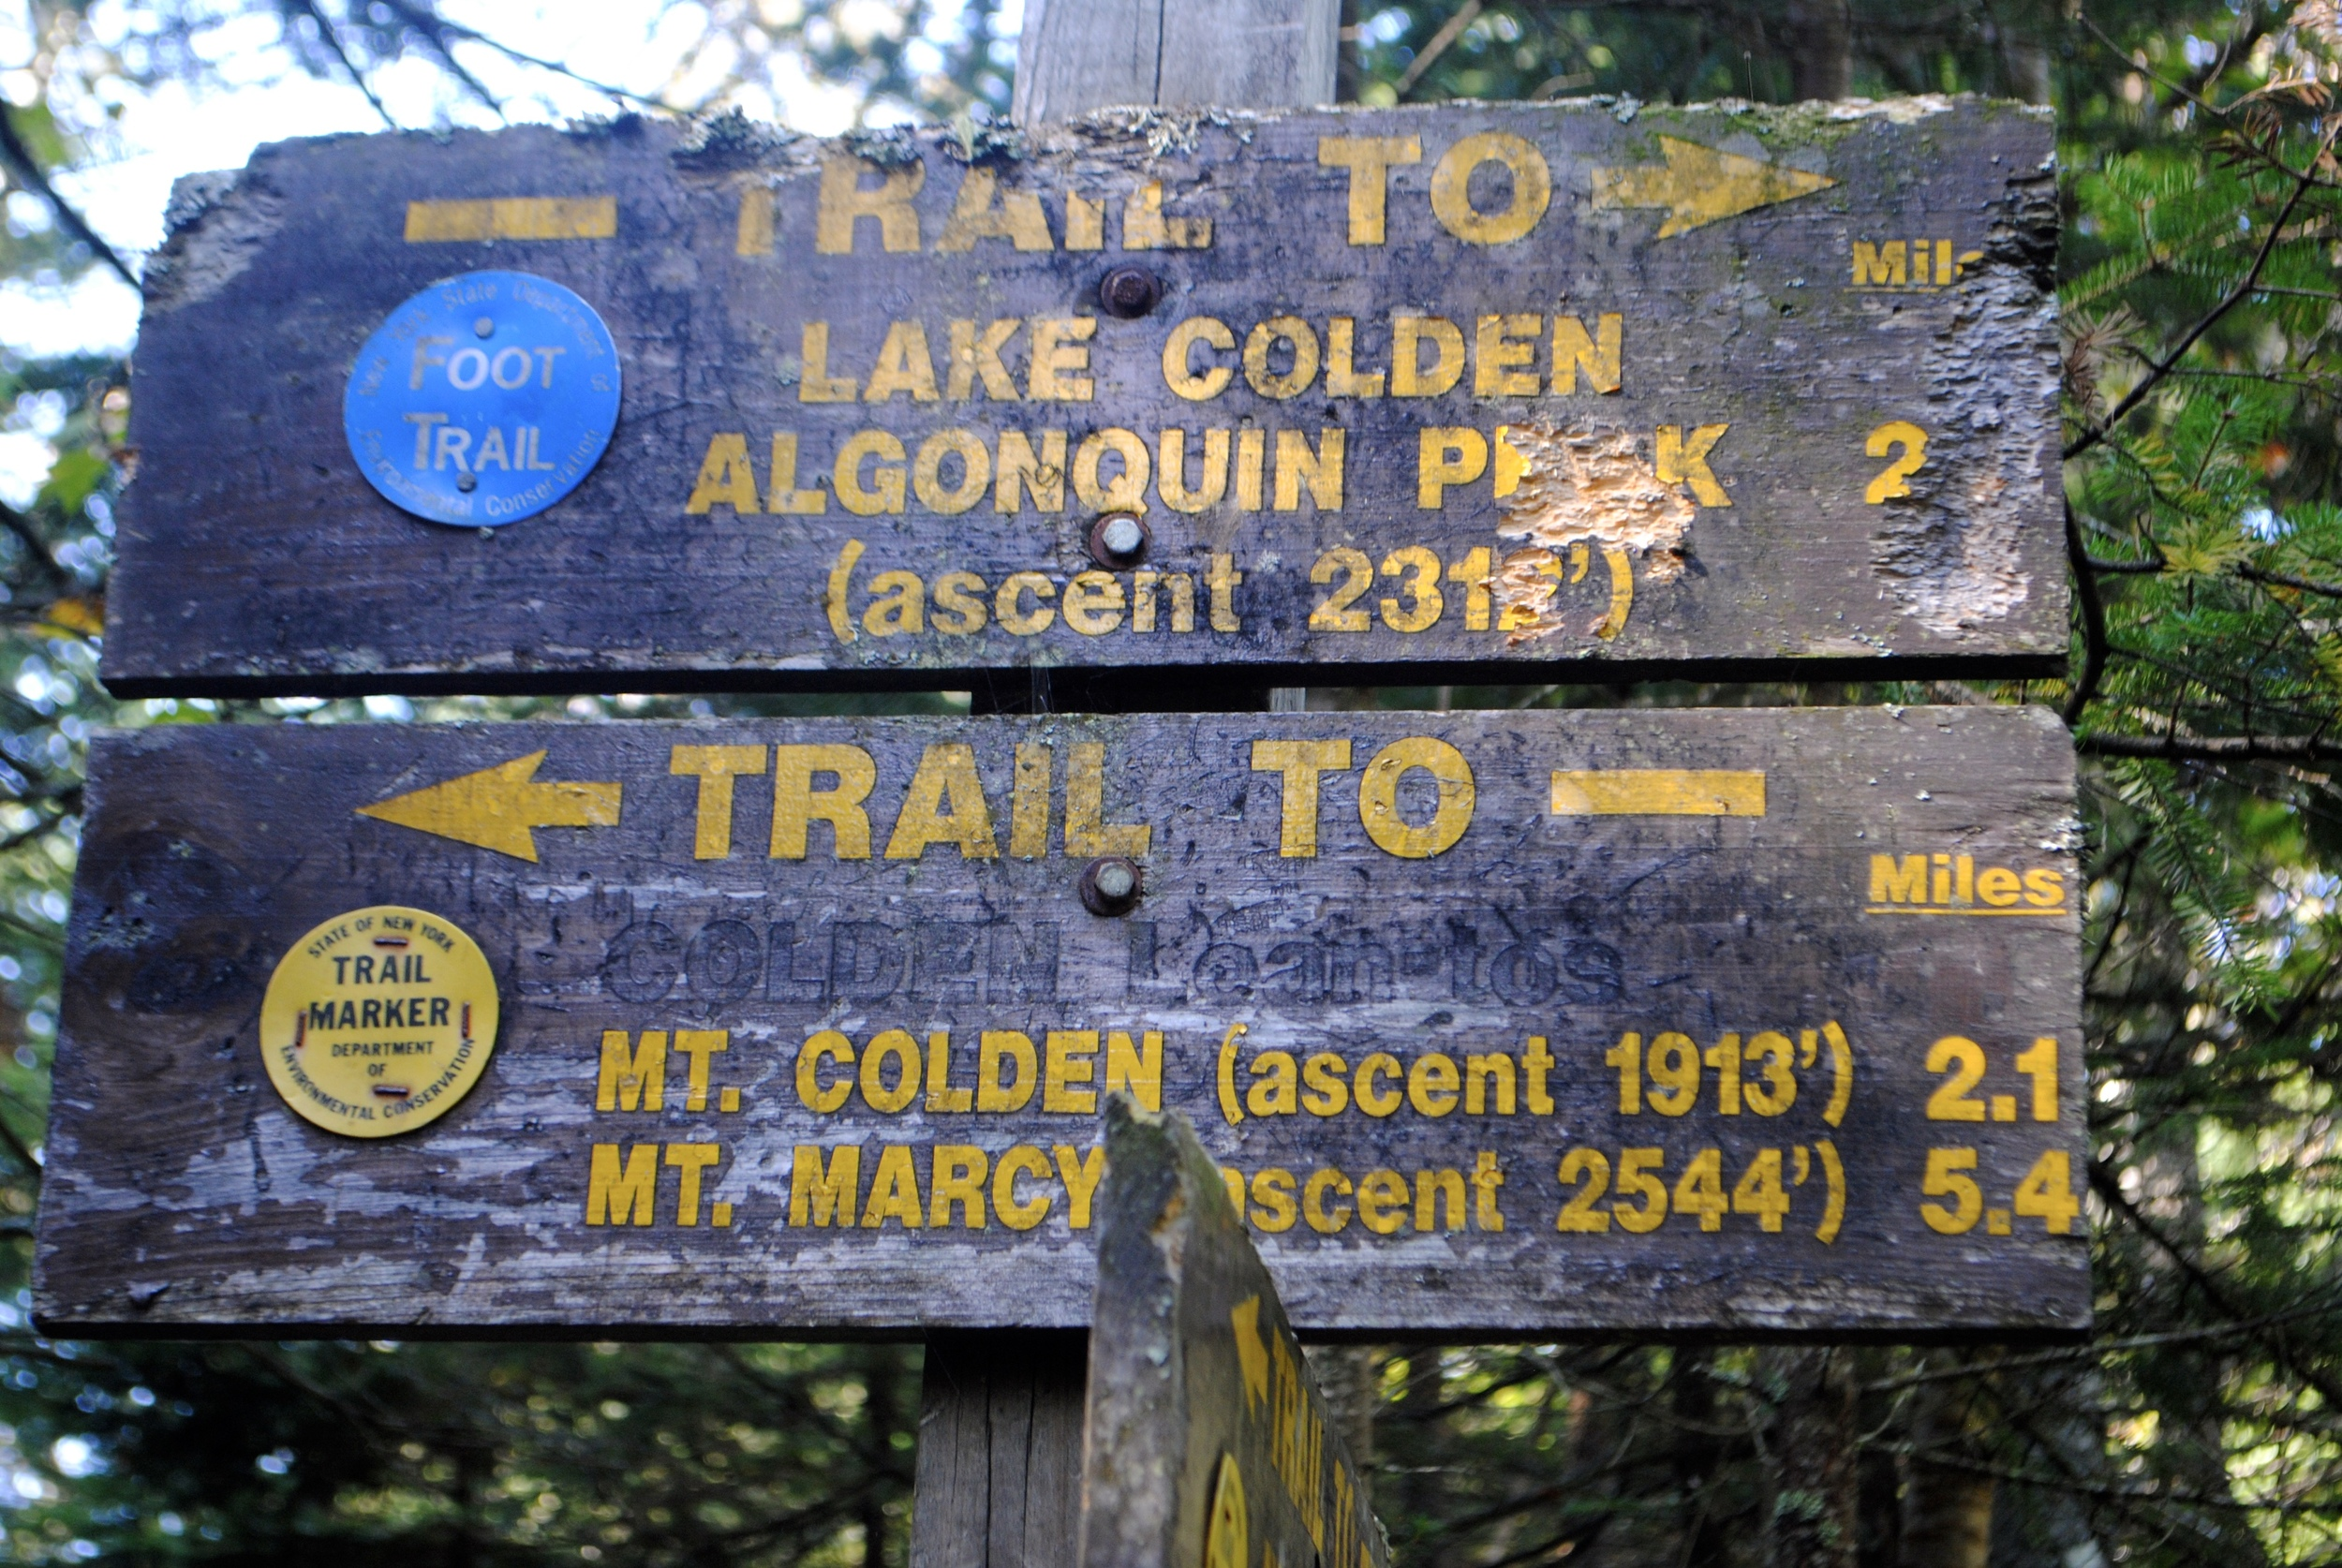 """""""Only 2 miles left until Mount Colden!"""" - Hold the excitement, we are going 1900 feet up!"""